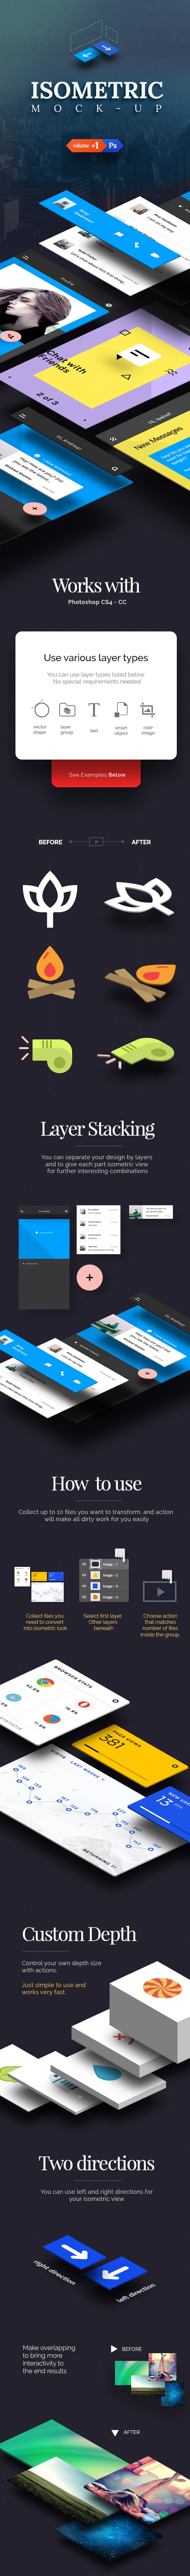 Isometric Mock-UP Actions - Photo Effects Actions